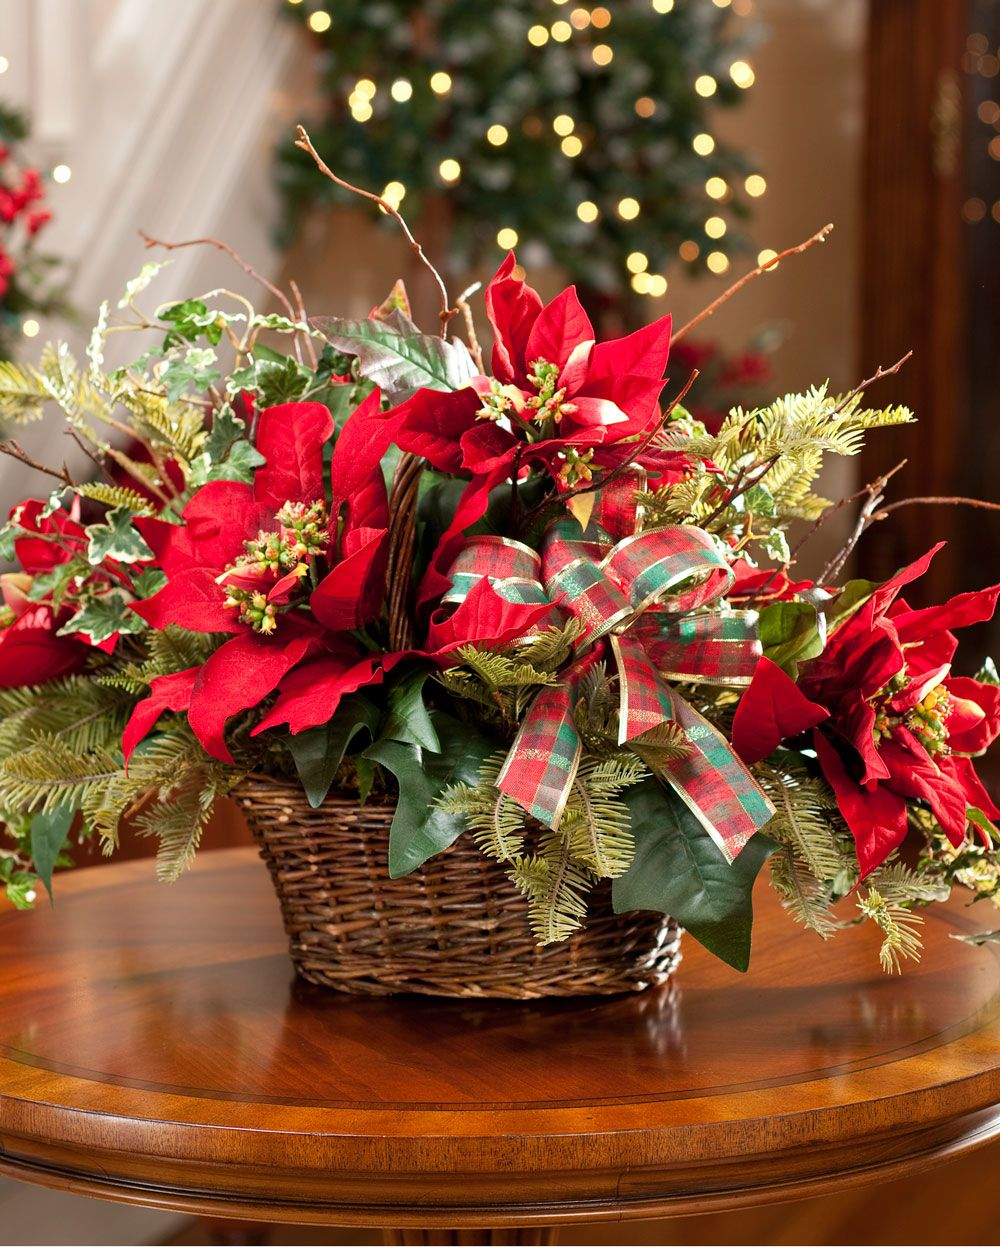 Poinsettia Evergreen Silk Centerpiece Christmas Arrangements Christmas Table Decorations Holiday Centerpieces